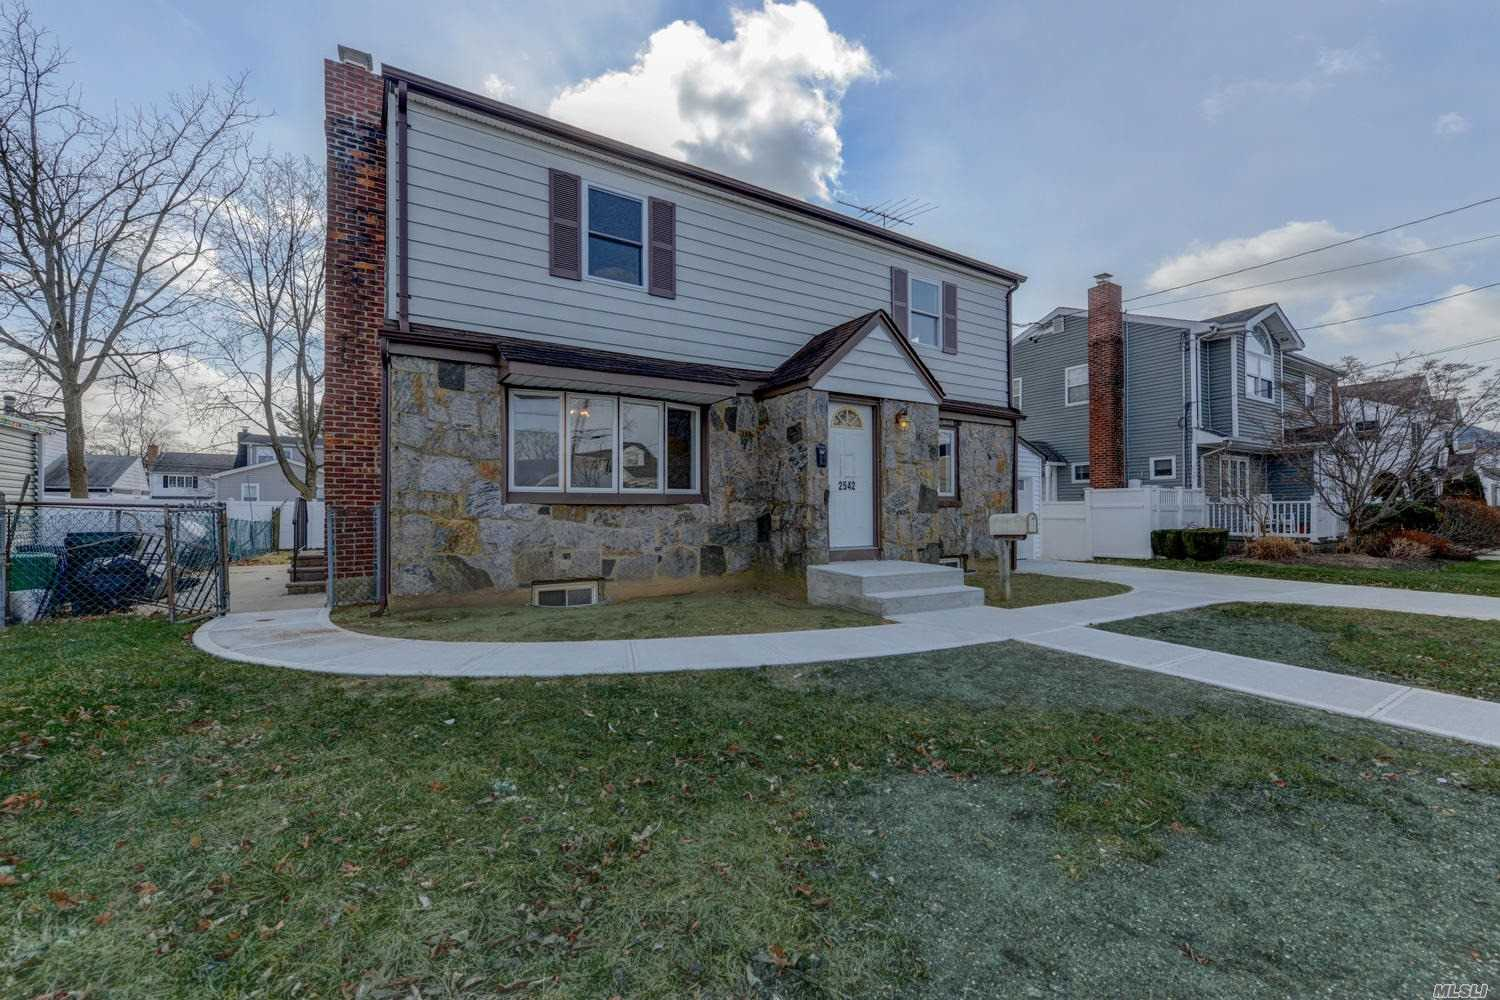 Located Mid Block On A Quiet Street, Large 5 Bdrm Colonial Features New Eat In Kitchen W/Custom Cabinets, Quartz Counter Tops, Ss Appliances, 2 Beautiful Baths, Newly Re Finished Hrd Wd Flrs, Finished Bsmnt W/Tiled Floors, Pvc Fence. Updated Htng Sys, Sidewalks, Driveway, Walkways, Stoops & Patio.Too Much To List Simply Unpack & Immediately Enjoy This Large Move In Ready & Updated Home..